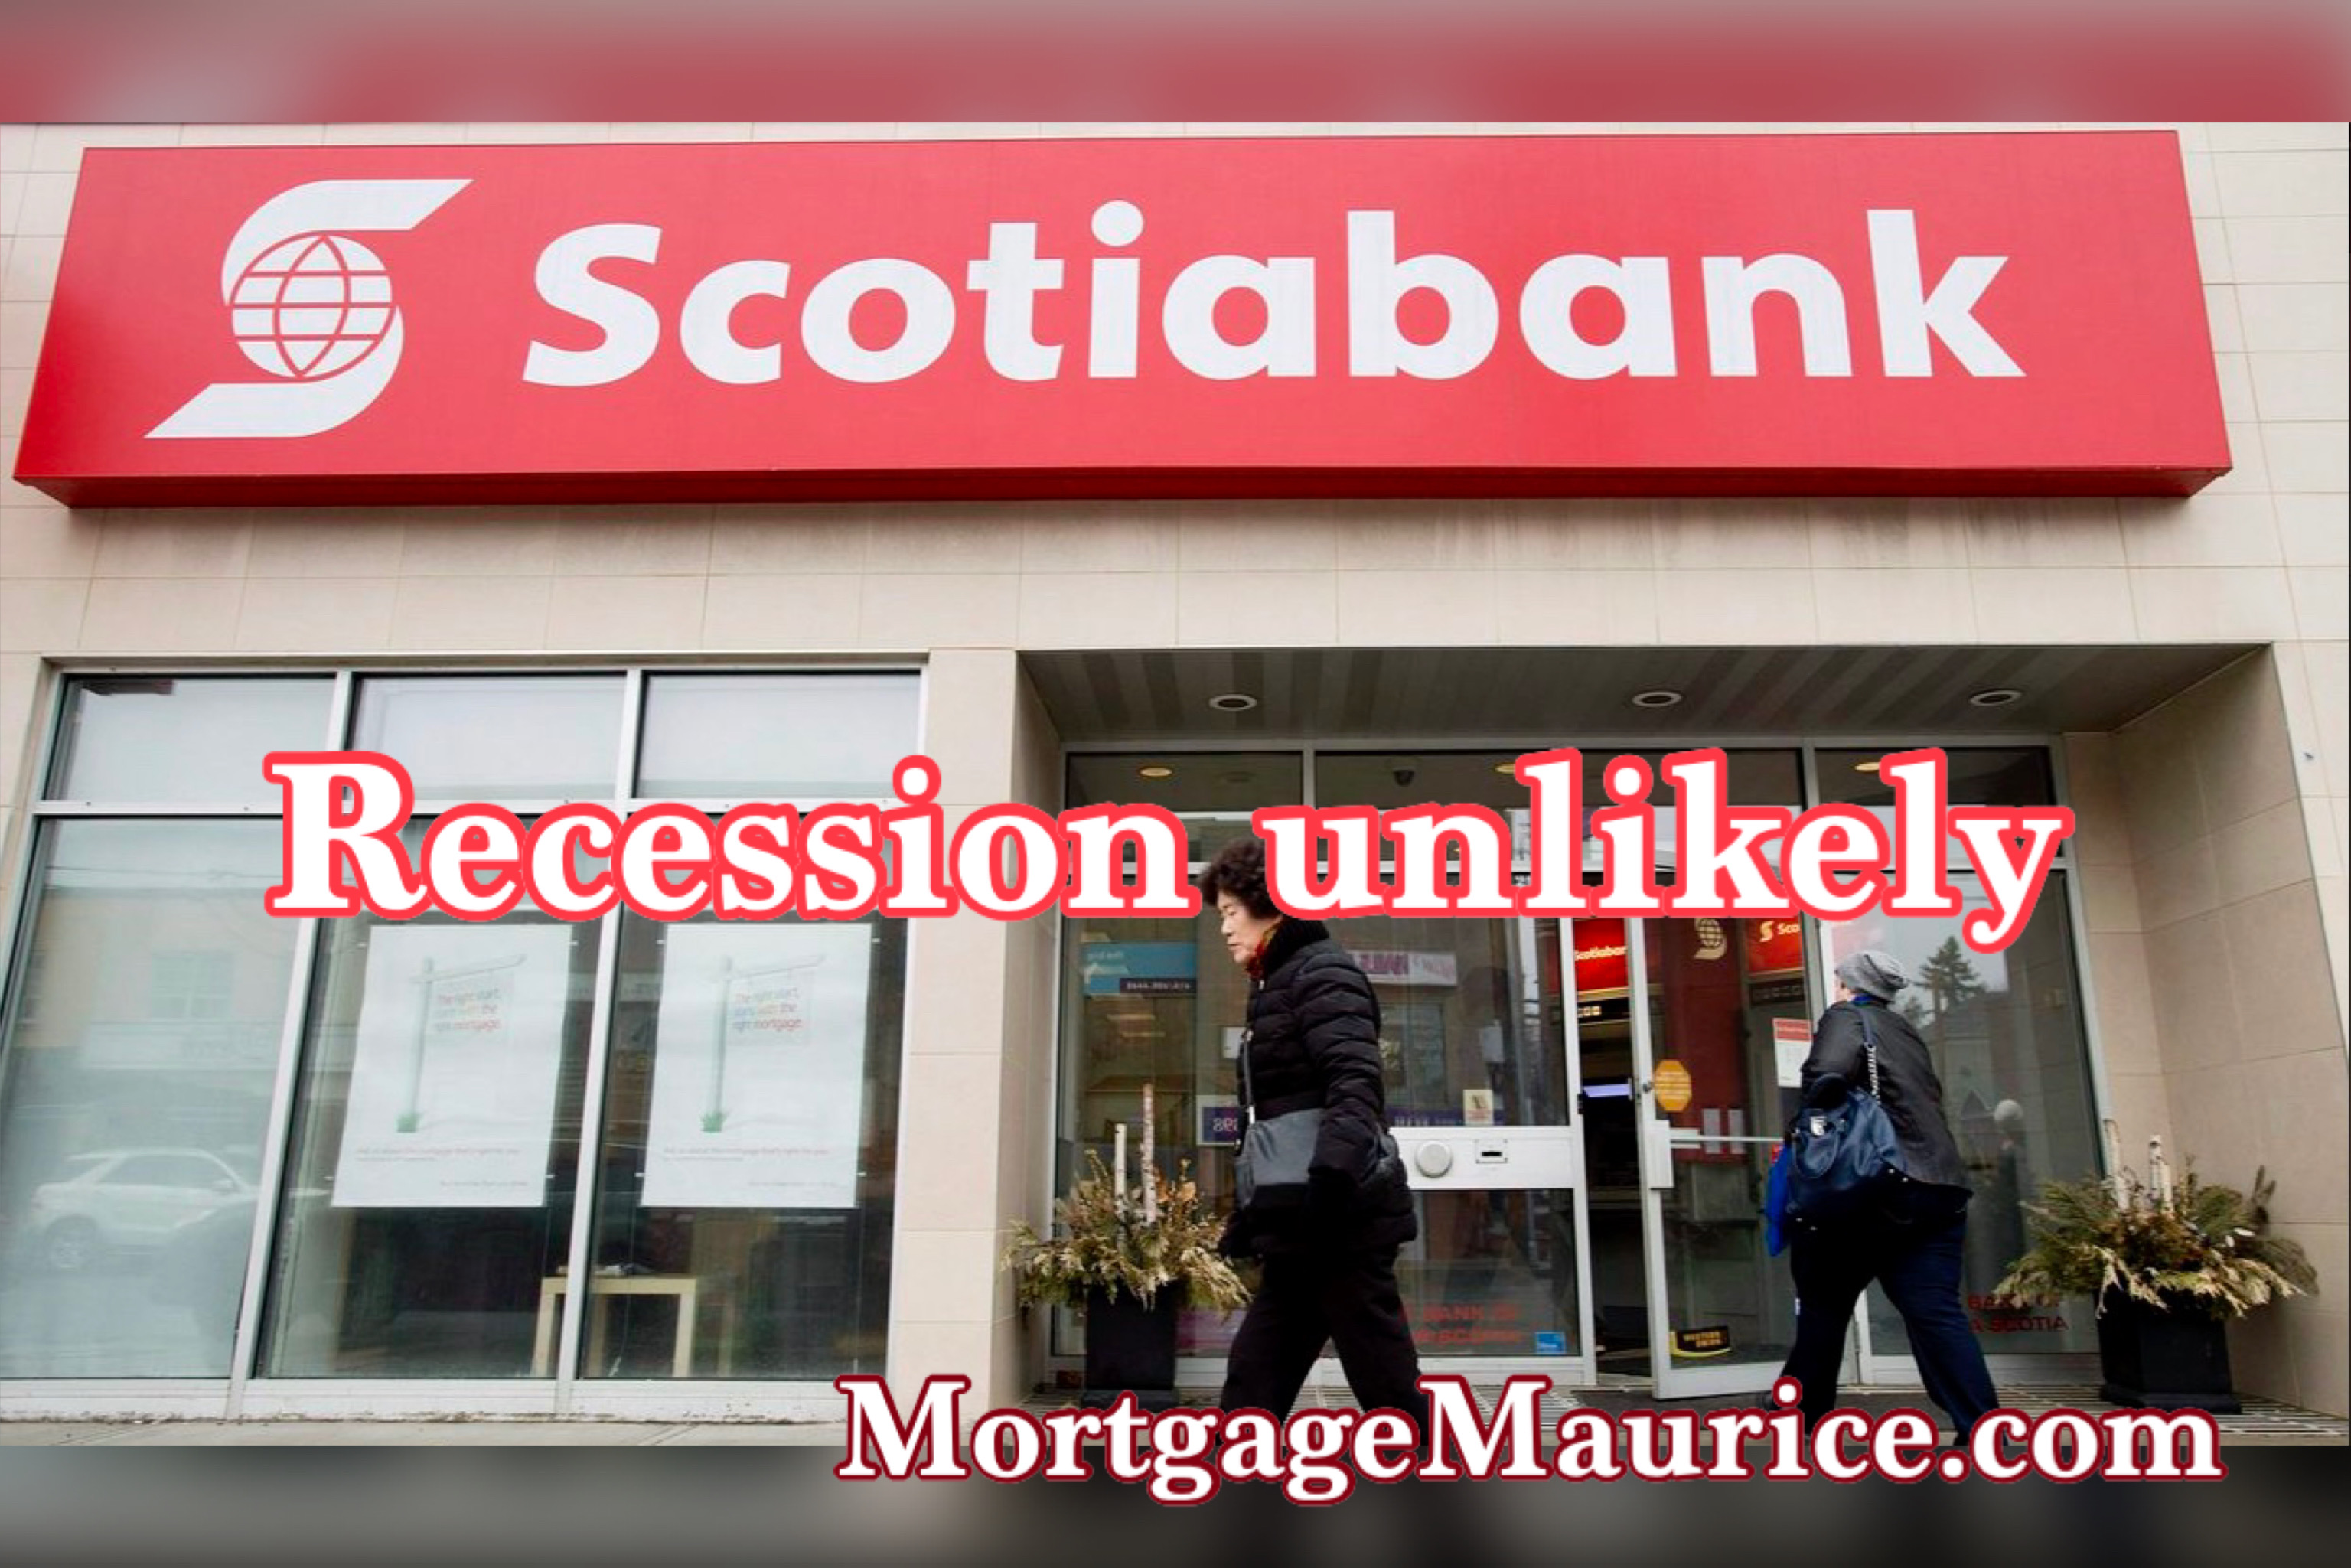 Scotiabank chief economist doubtful on recession, expects interest rate cut